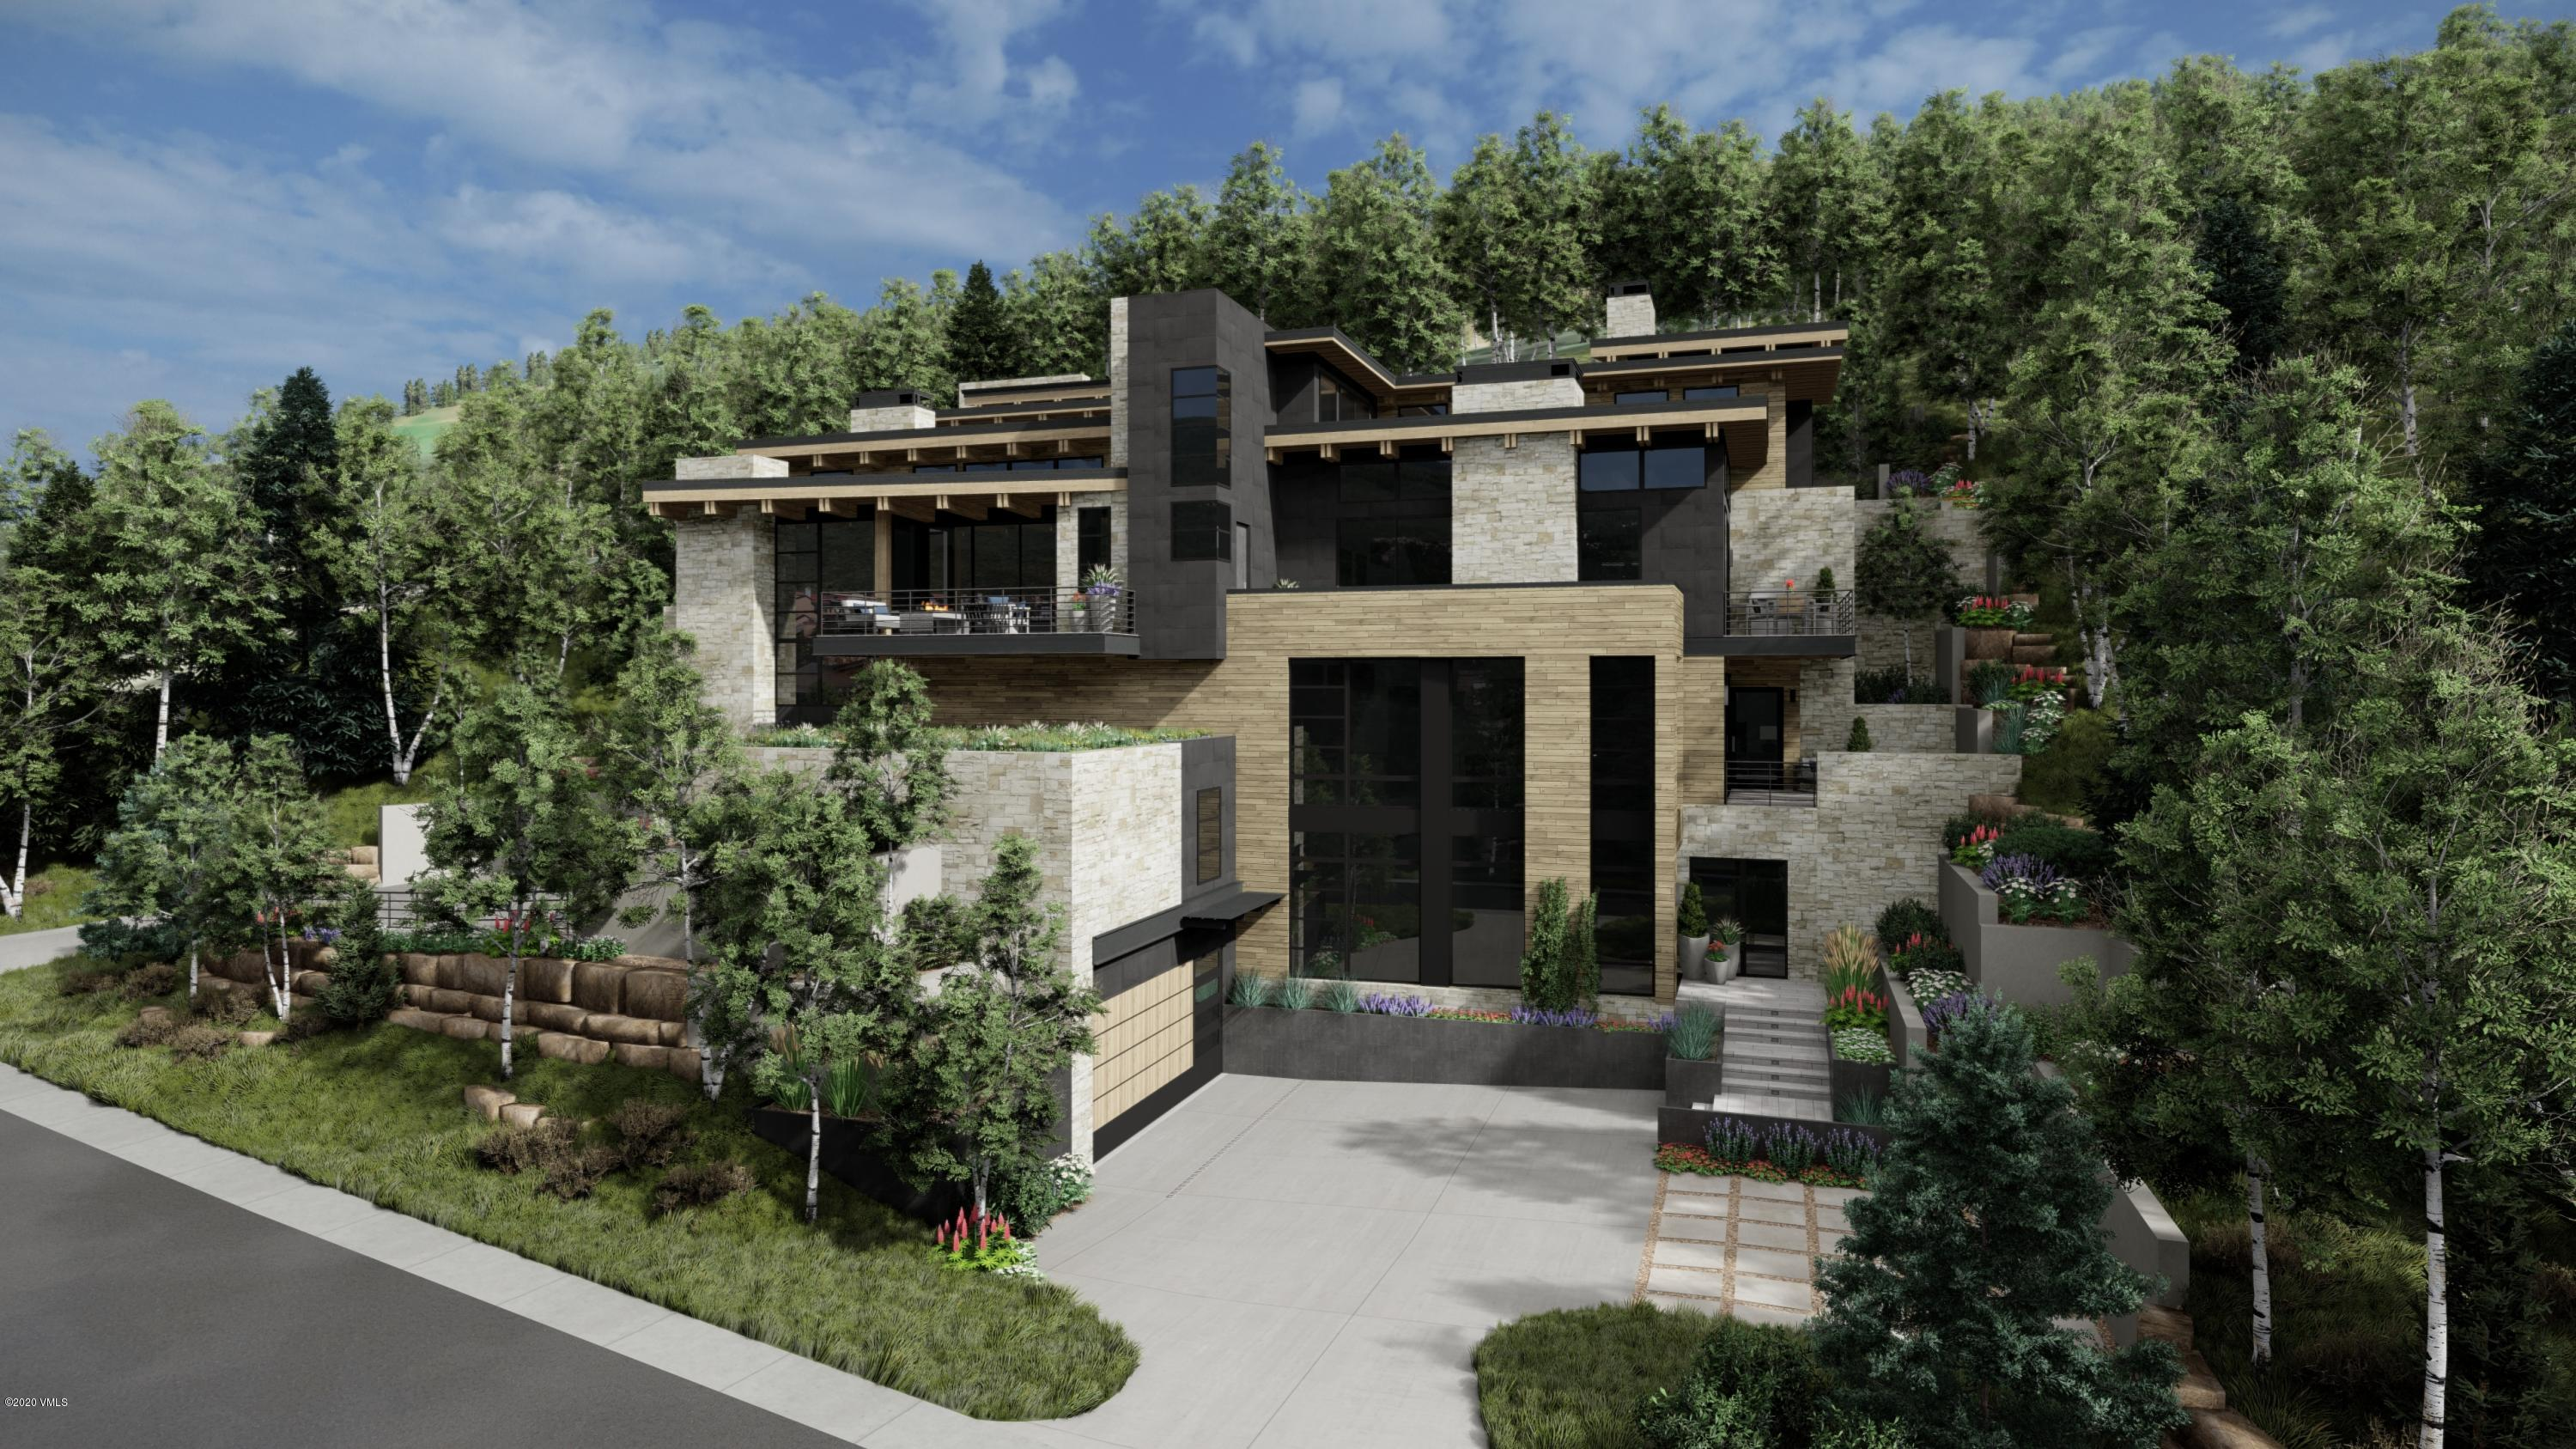 Rare opportunity to own a new construction, mountain contemporary home on the highly coveted Forest Road in Vail. Designed by Kyle Webb and built by Paragon Homes, Inc., this home offers unparalleled luxury, craftsmanship and sophistication. This modern mountain retreat features a warm aesthetic with elements of wood and stone used throughout and defined clean lines. Grand glass walls harness breathtaking views of the surrounding mountains, woodland and village of Lionshead. Located approximately 500 feet from the Born Free ski run, the location is prime especially for those that love tree skiing or for those who wish to briefly ski down to the  Lionshead Gondola which is only about 600 feet away. Encompassing 5,995 SF of living space, there are five bedrooms, six bathrooms and several outdoor patios.  With the driveway and all deck surfaces heated efficiently, all will enjoy the beauty of the outdoor dining area year-round. The refined kitchen with gorgeous Italian cabinetry and state of the art appliances open up to the living and dining areas. With elevated views, sun filled interiors, this open floorplan masterfully accommodates for entertaining and family fun. Offering four levels of luxurious living, every room is an experience in and of itself with spectacular attention to detail. The main-level master bedroom was designed to provide ultimate privacy, while still encapsulating the beauty of the outdoor landscape with its own spacious patio and surrounding aspen trees. After a day of skiing Vail's world-famous powder or hiking in the White River National Forest, drop off your gear in the mudroom outfitted with built-in ski racks, cabinets, boot dryers, and shelving before heading upstairs for endless respite options. Nestled mountainside, enjoy the mountain-chic architecture that is luxurious, yet inviting for your family and guests to enjoy. Estimated completion January 2022. Please view mls-672.ForestRoadLuxury.com for complete details. Note, the taxes & exa